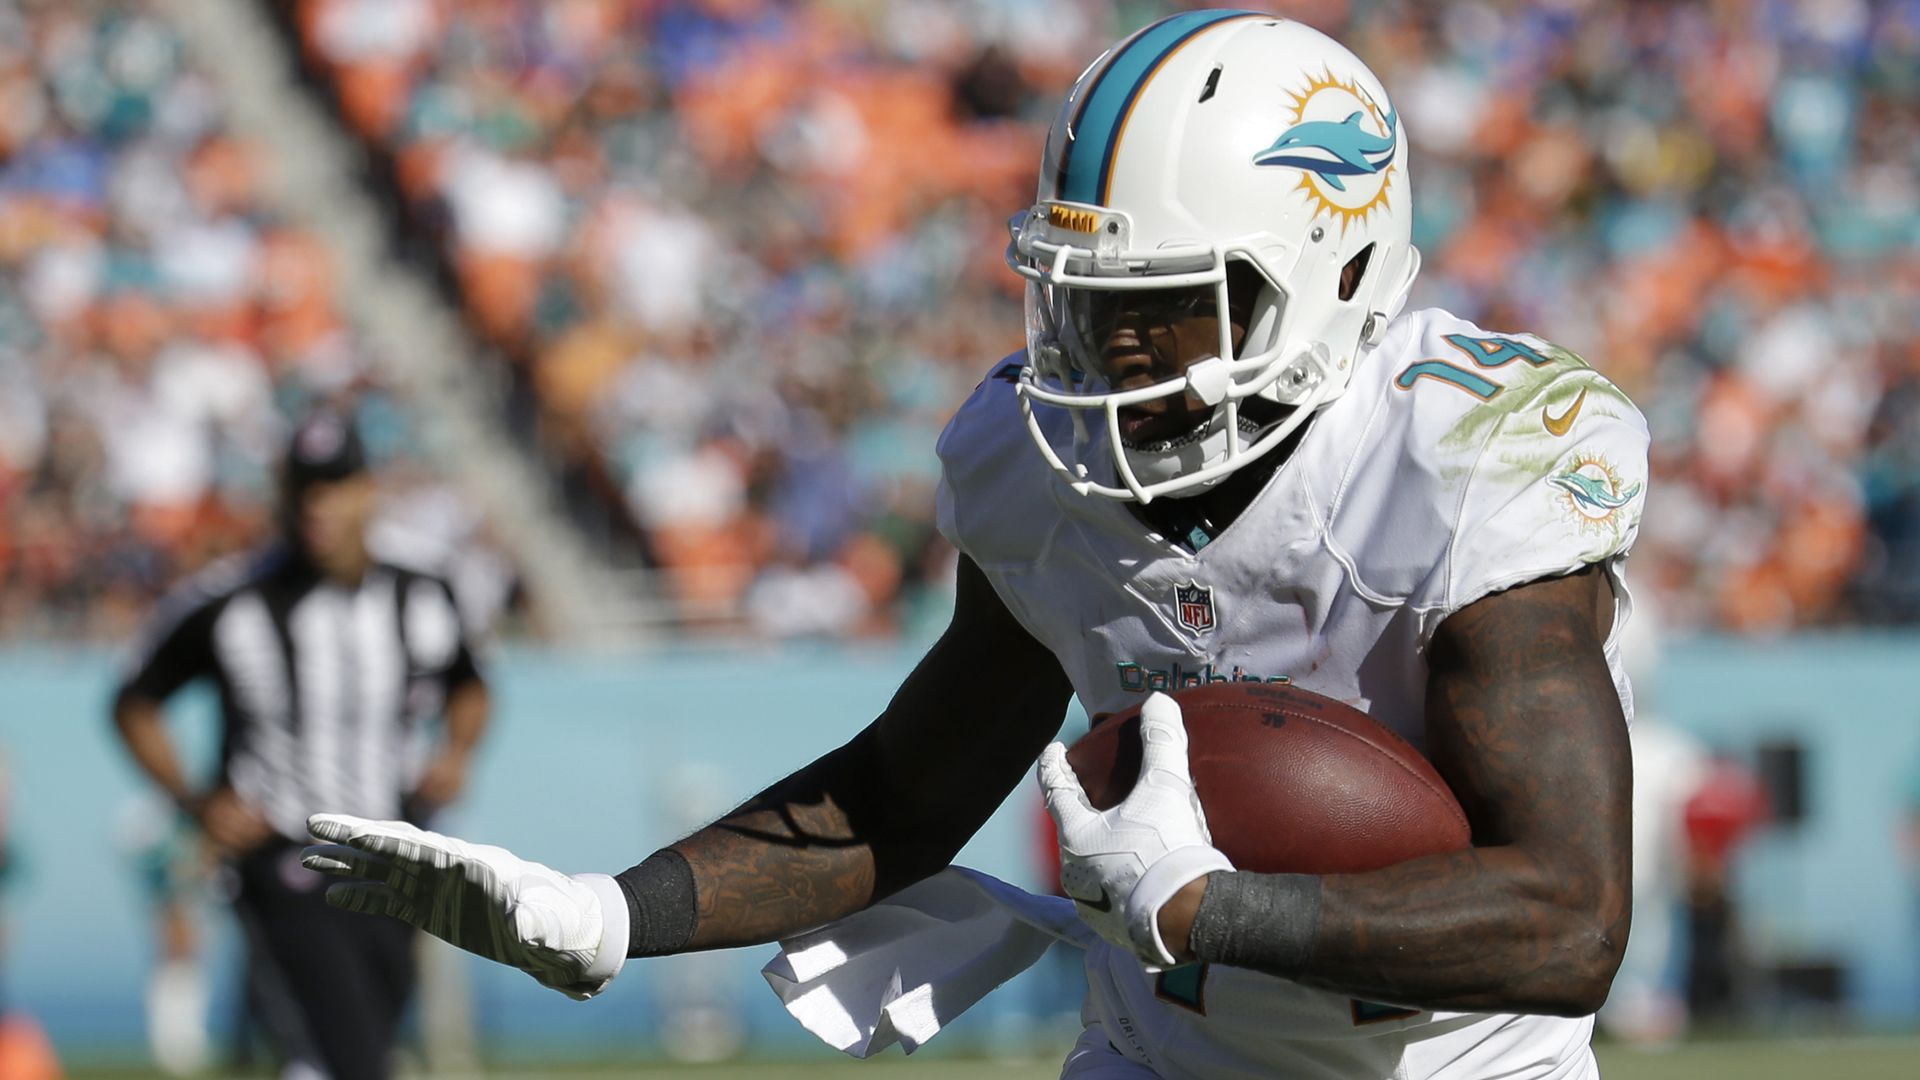 Jarvis Landry hd wallpaper for laptop